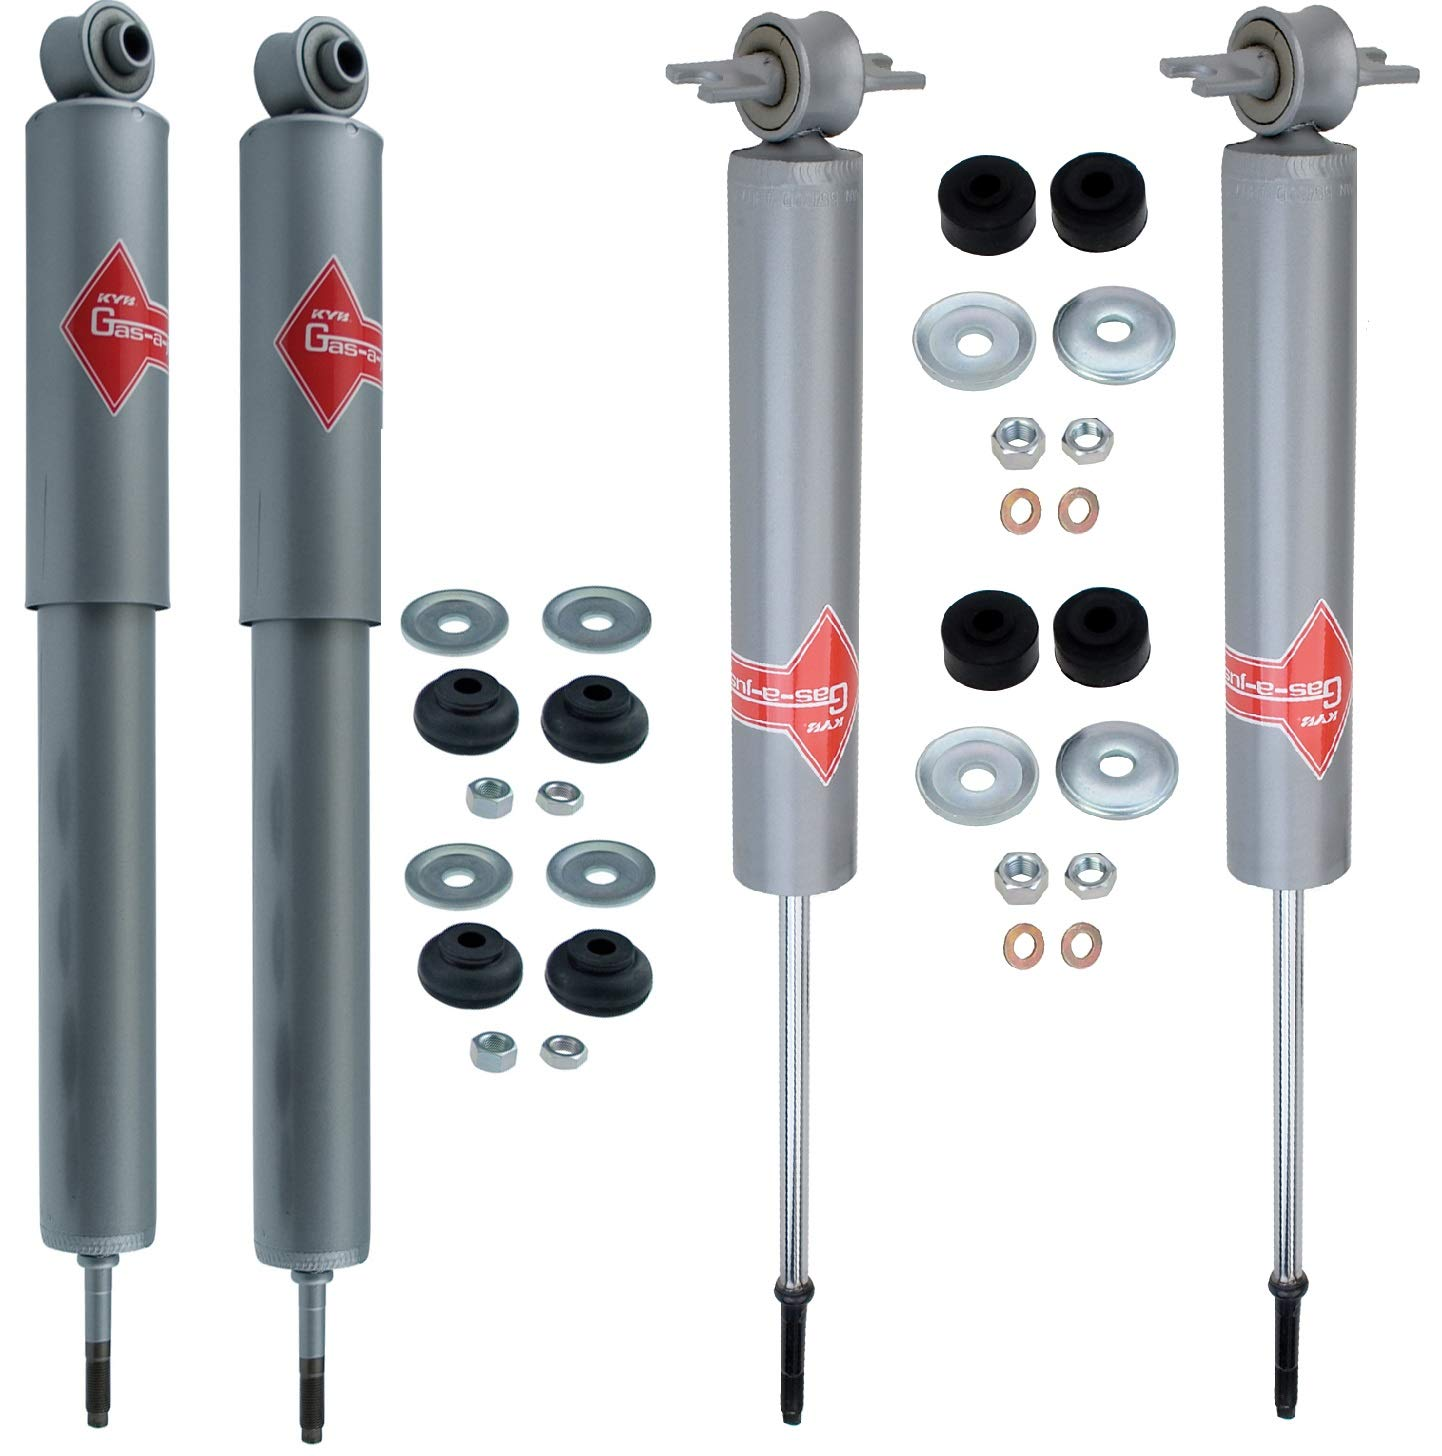 NEW Front /& Rear Shock Absorbers Kit KYB Gas-a-Just for Mercedes W126 C126